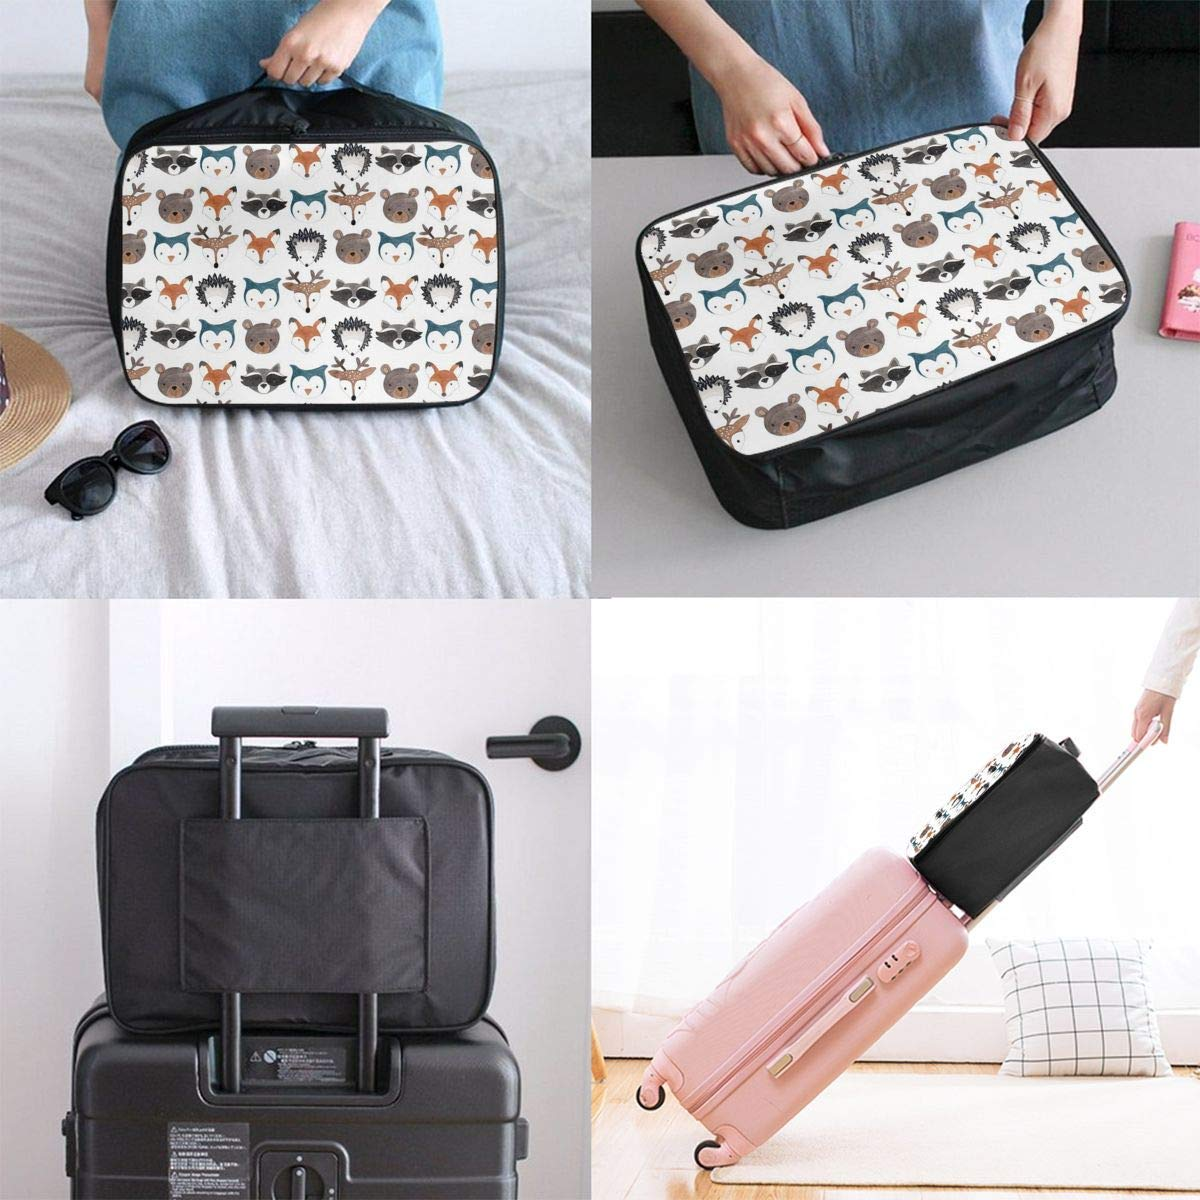 JTRVW Luggage Bags for Travel Travel Lightweight Waterproof Foldable Storage Carry Luggage Duffle Tote Bag Woodland Creatures